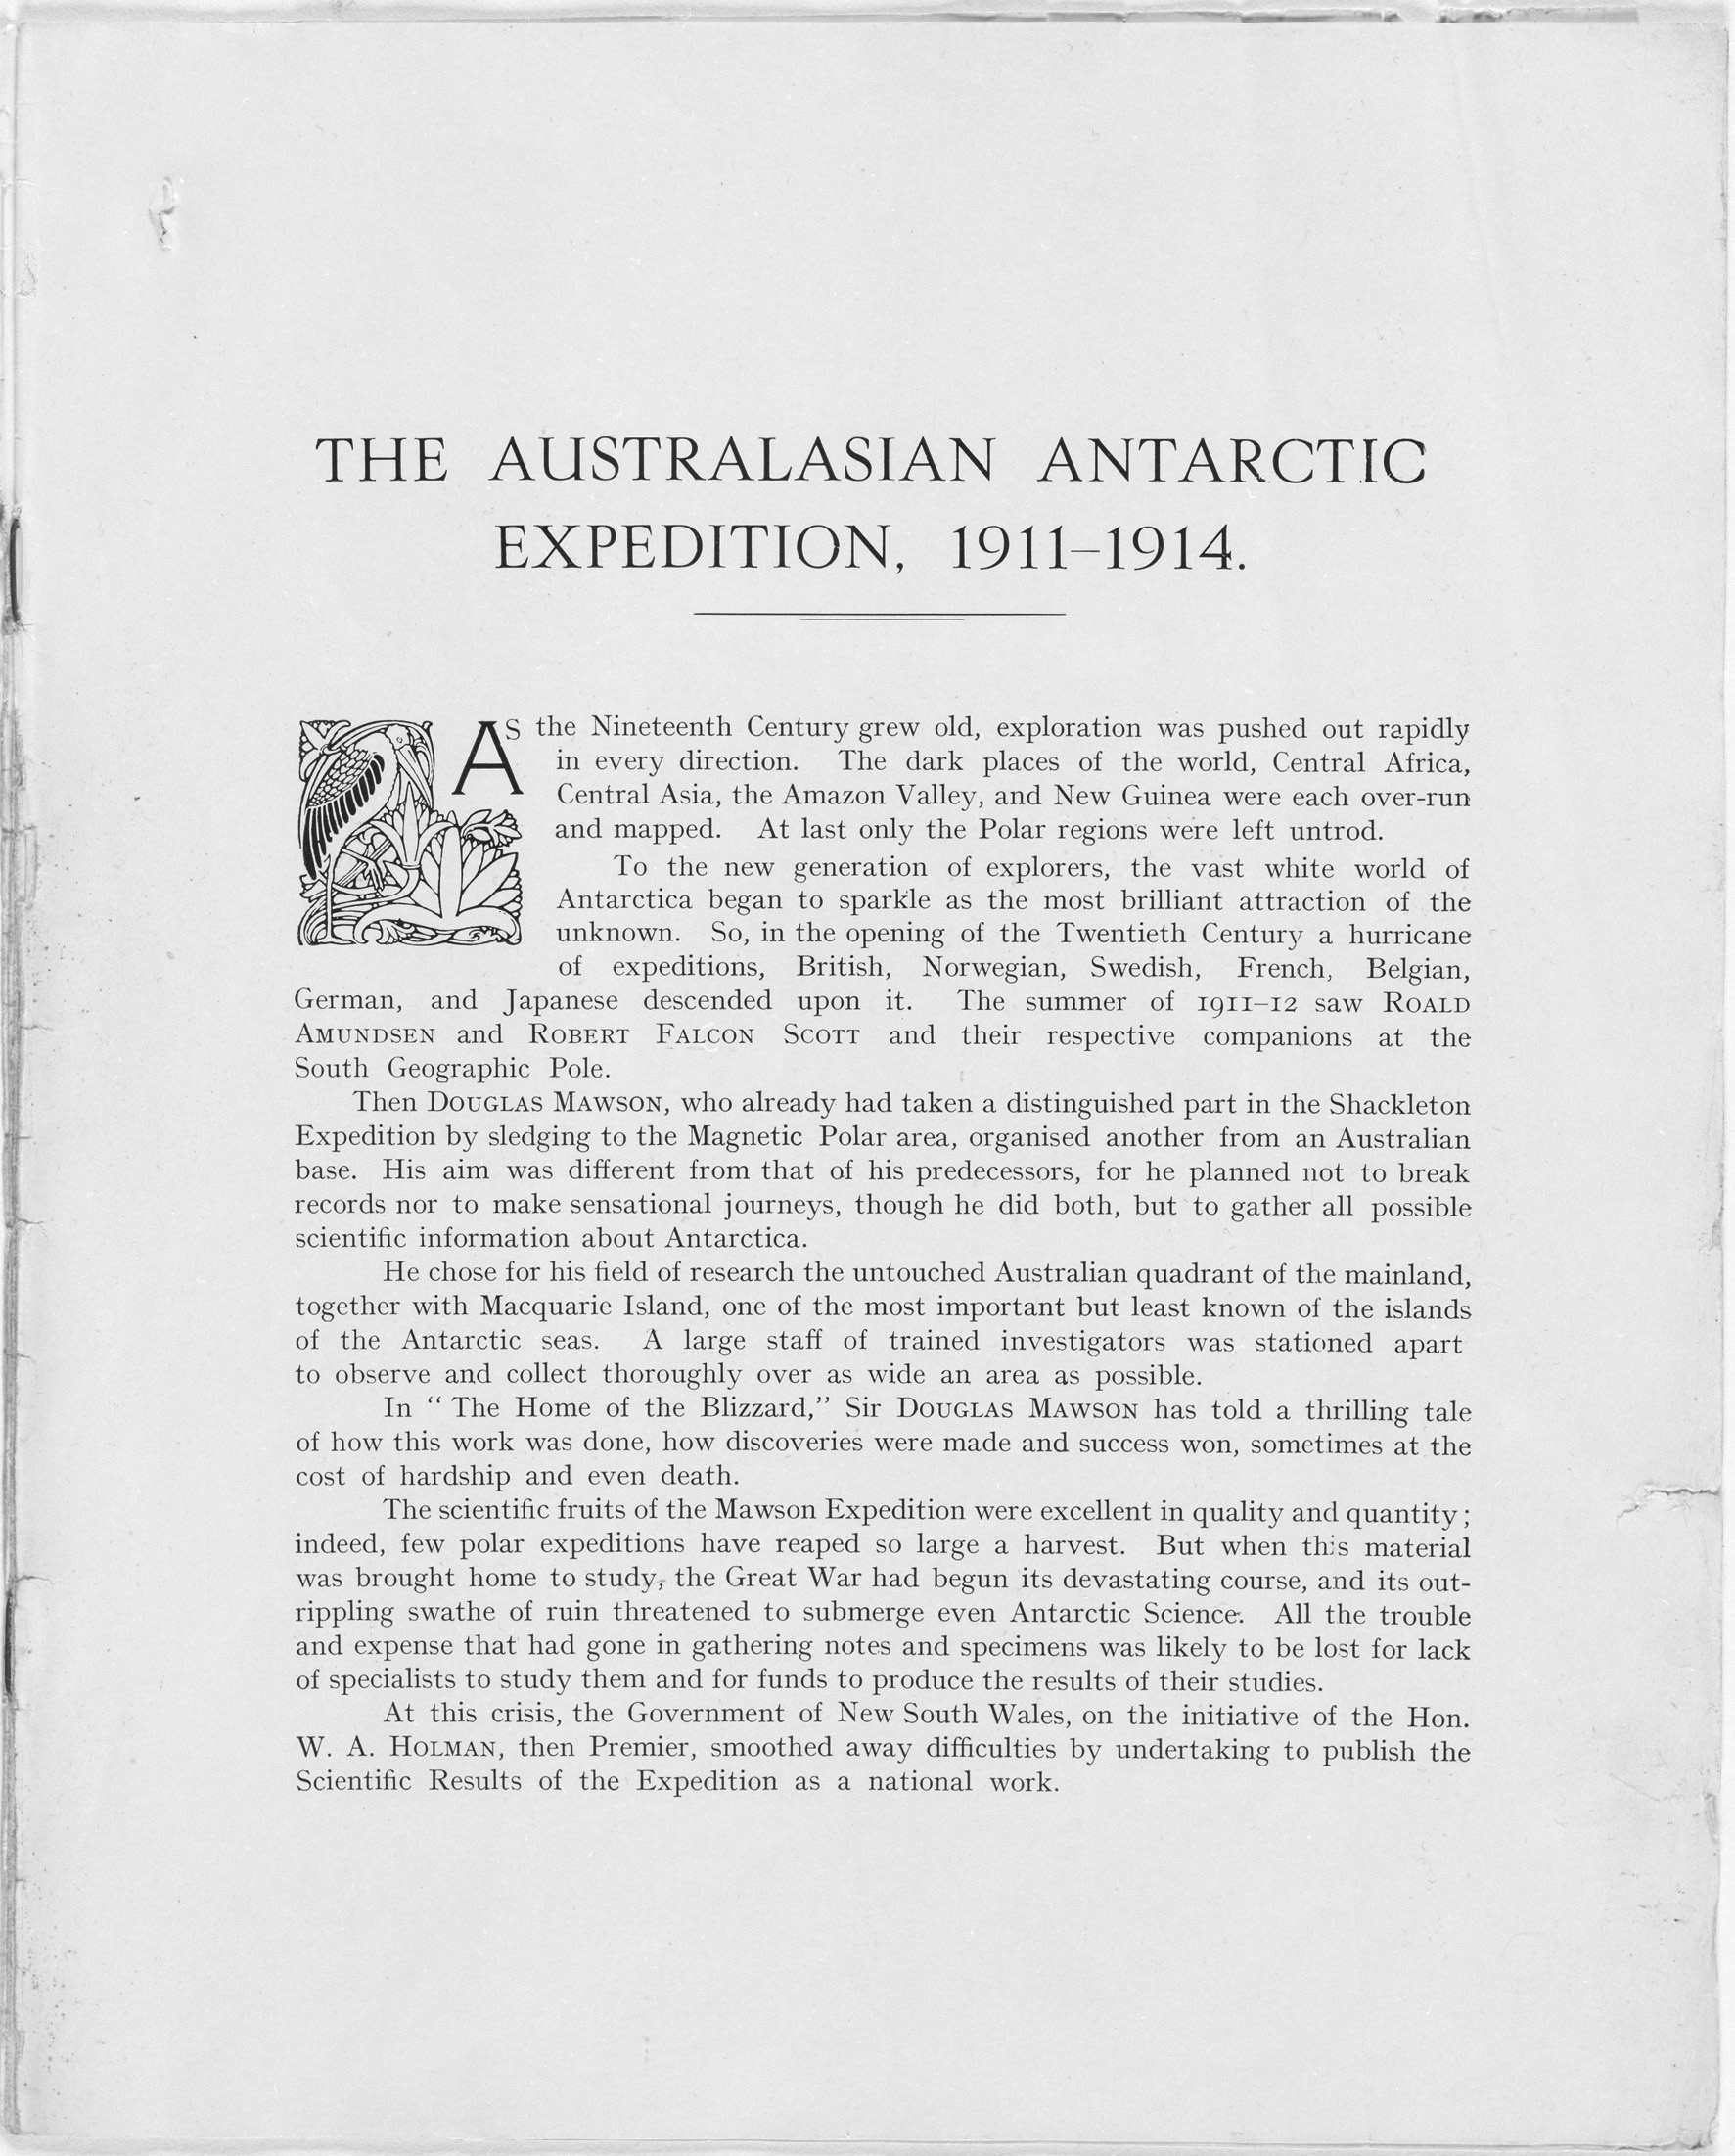 The Prospectus outlines the content of the records and the cost of each volume or a subscription to receive all records of the expedition. NRS 19745 2-995 p.2